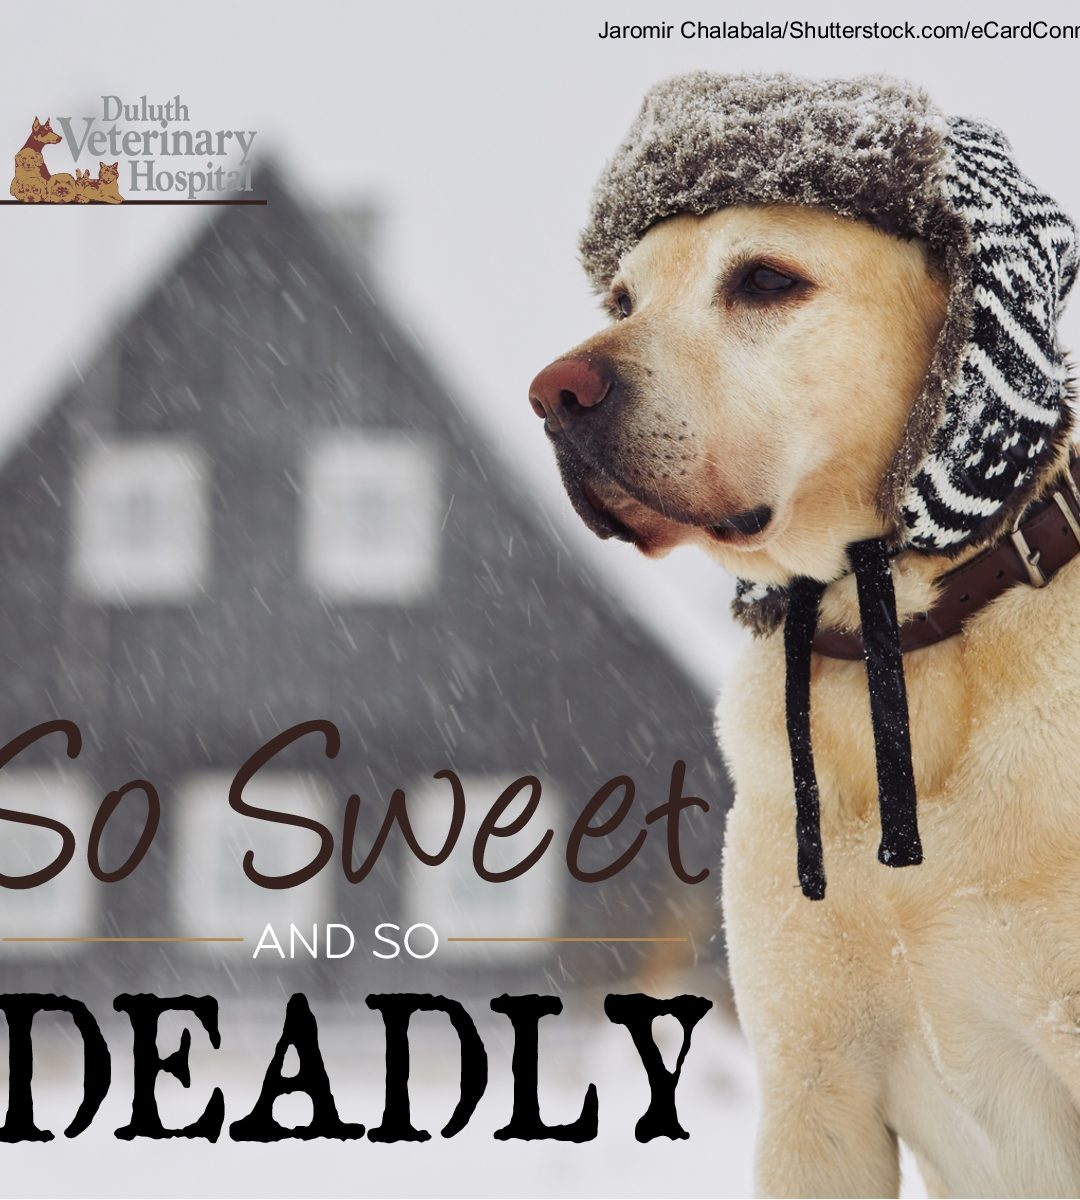 So Sweet and So Deadly